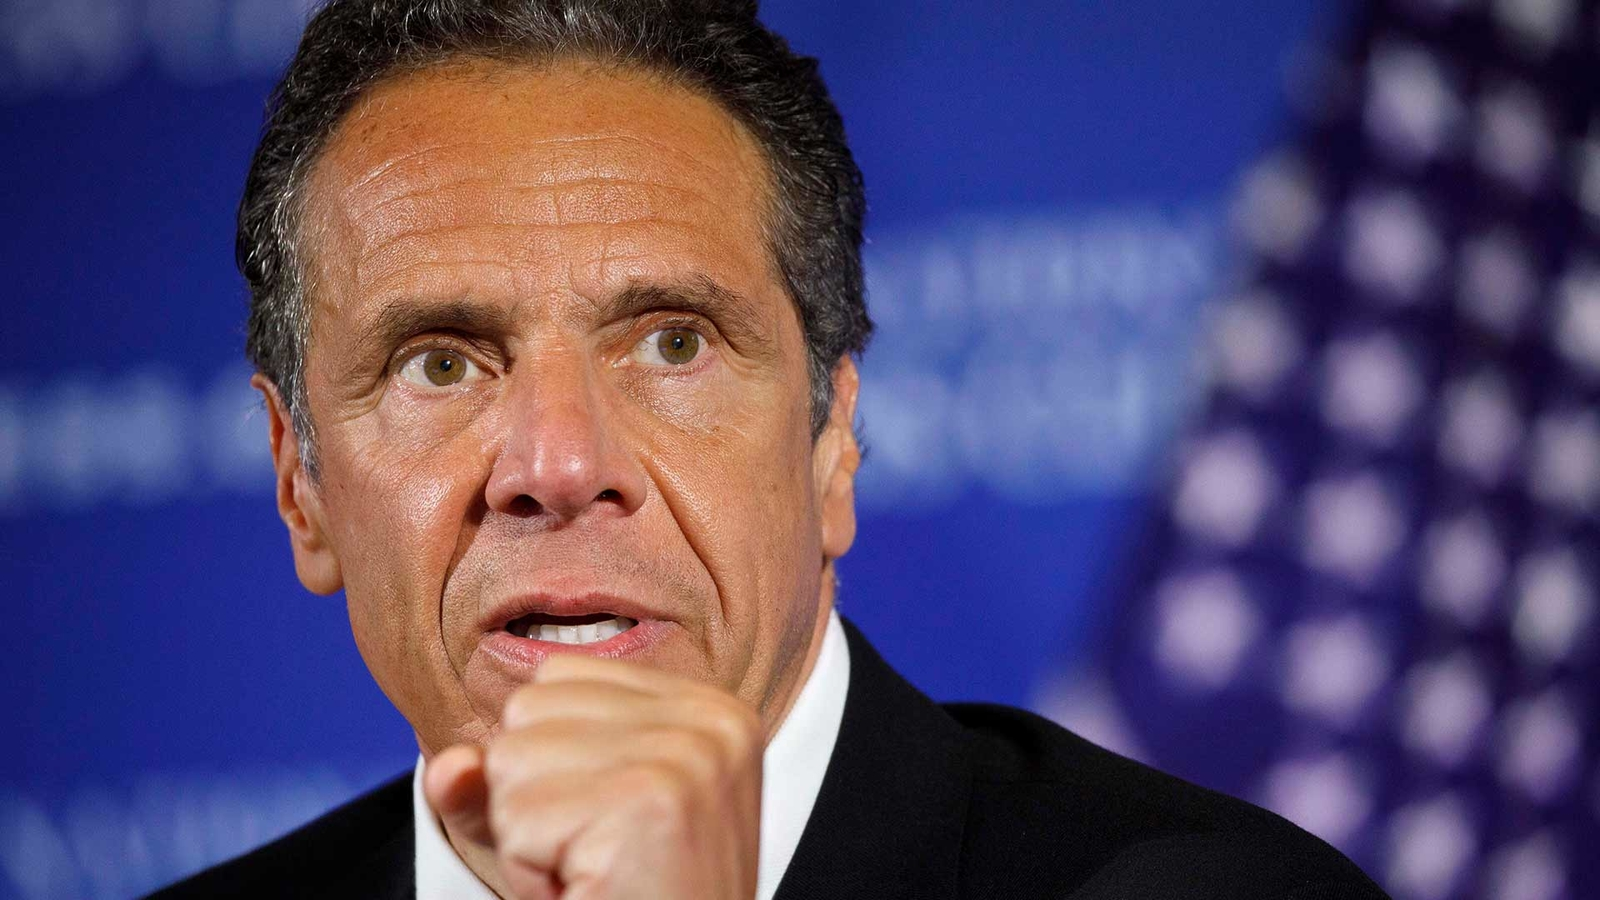 NY Gov. Cuomo addresses harassment claims, vows to stay in office